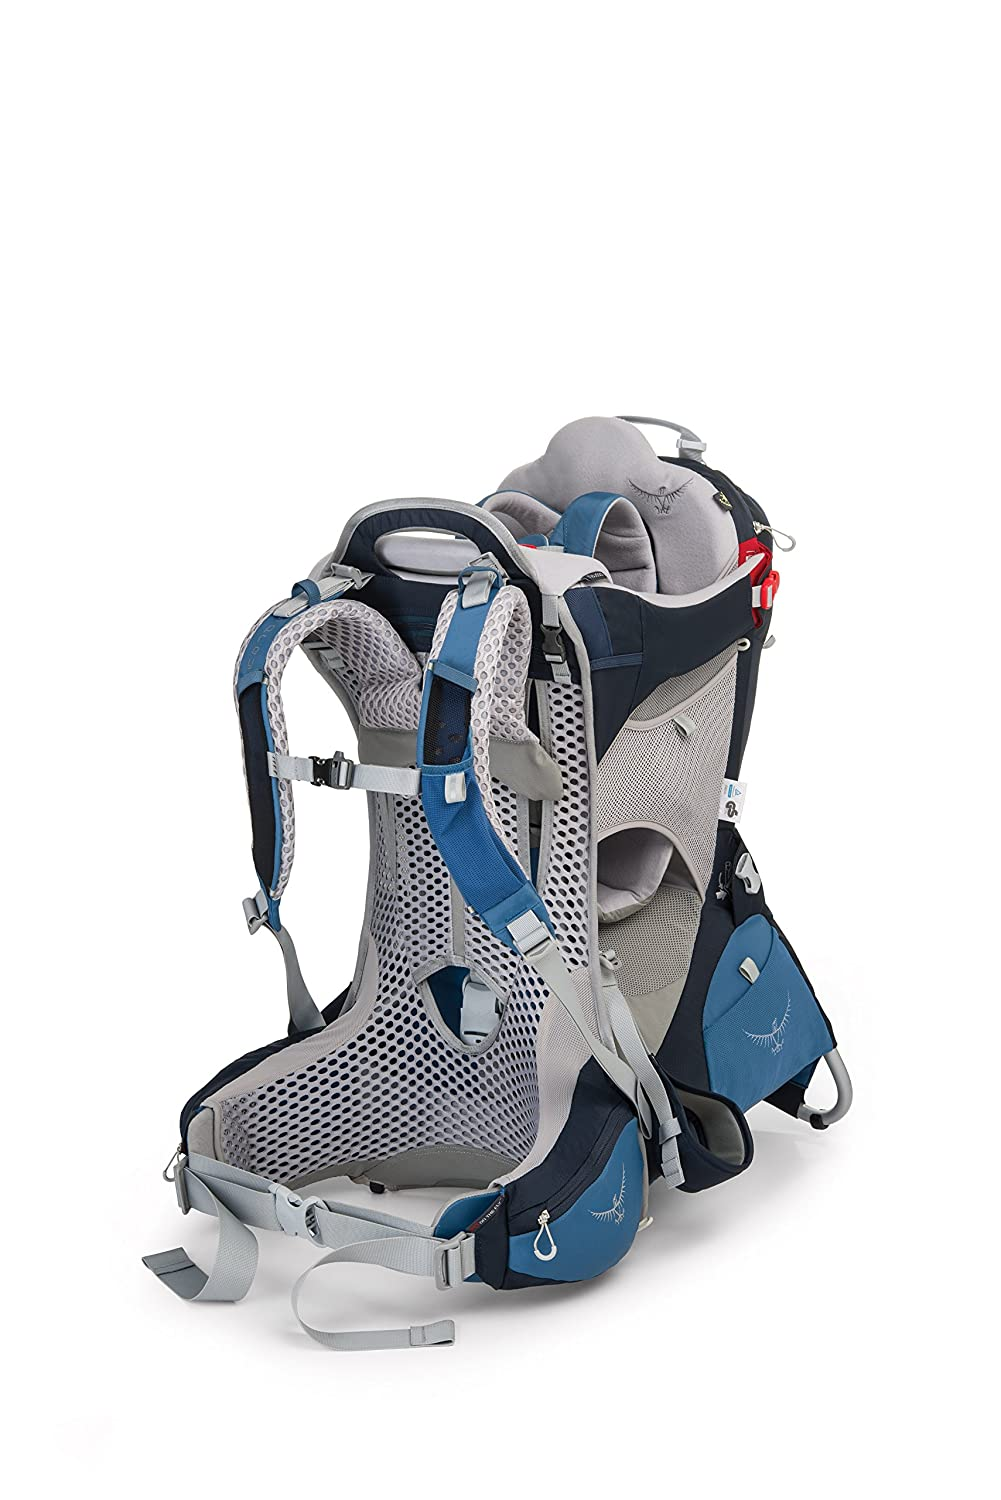 Osprey POCO AG Plus Child Carrier